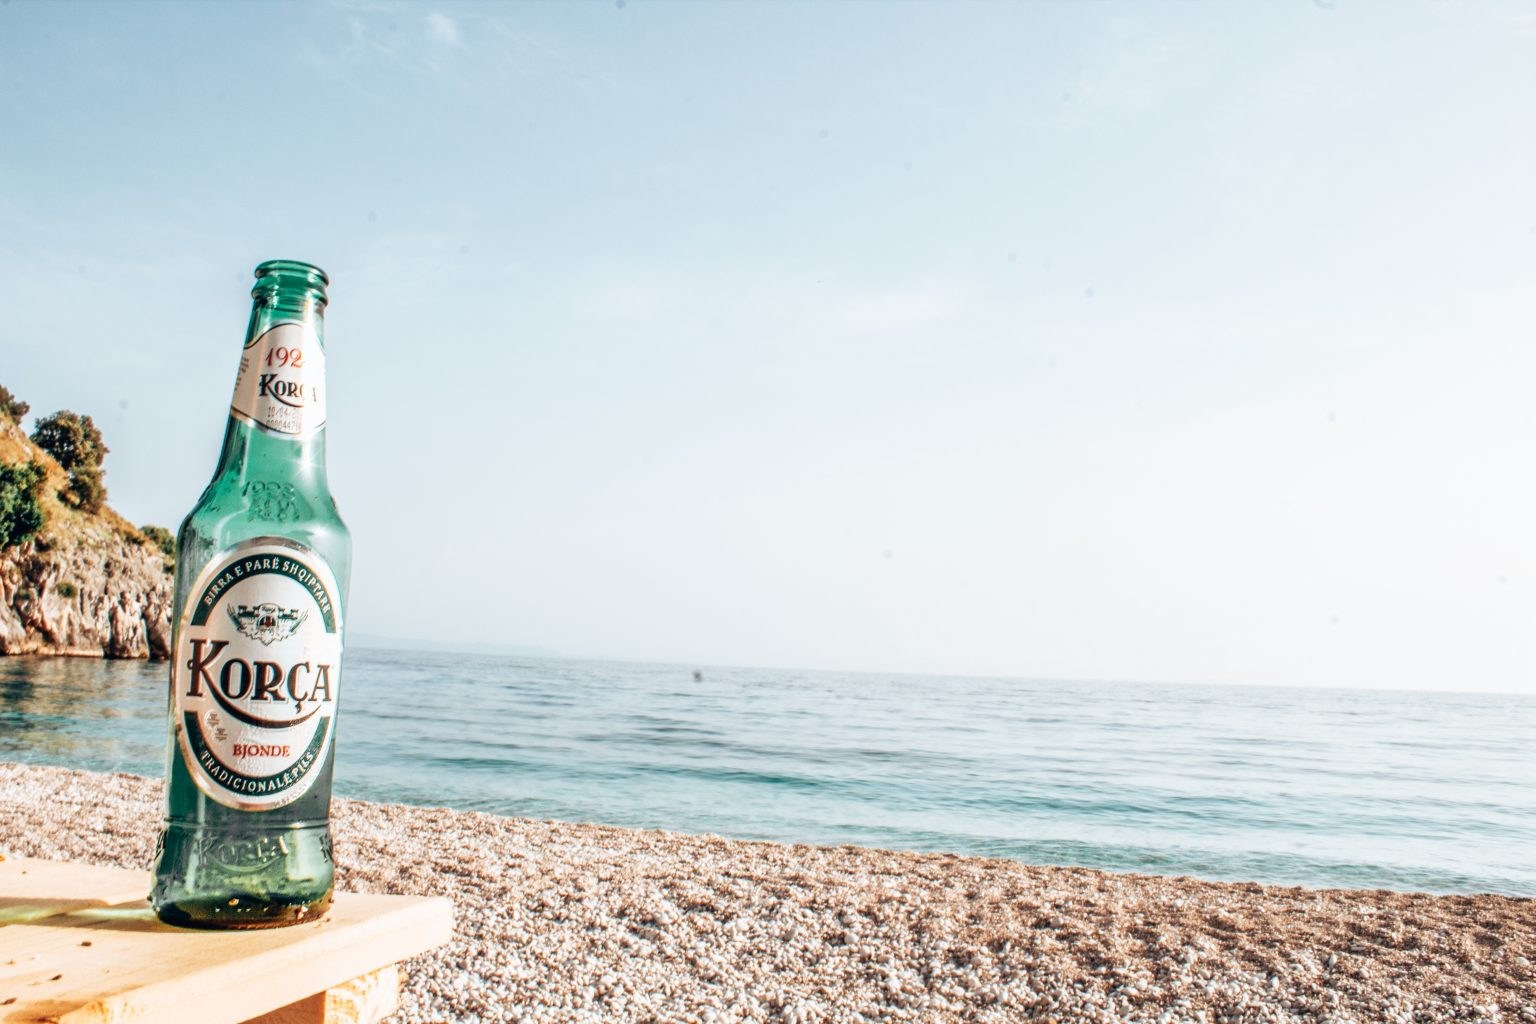 korca beer on the beach